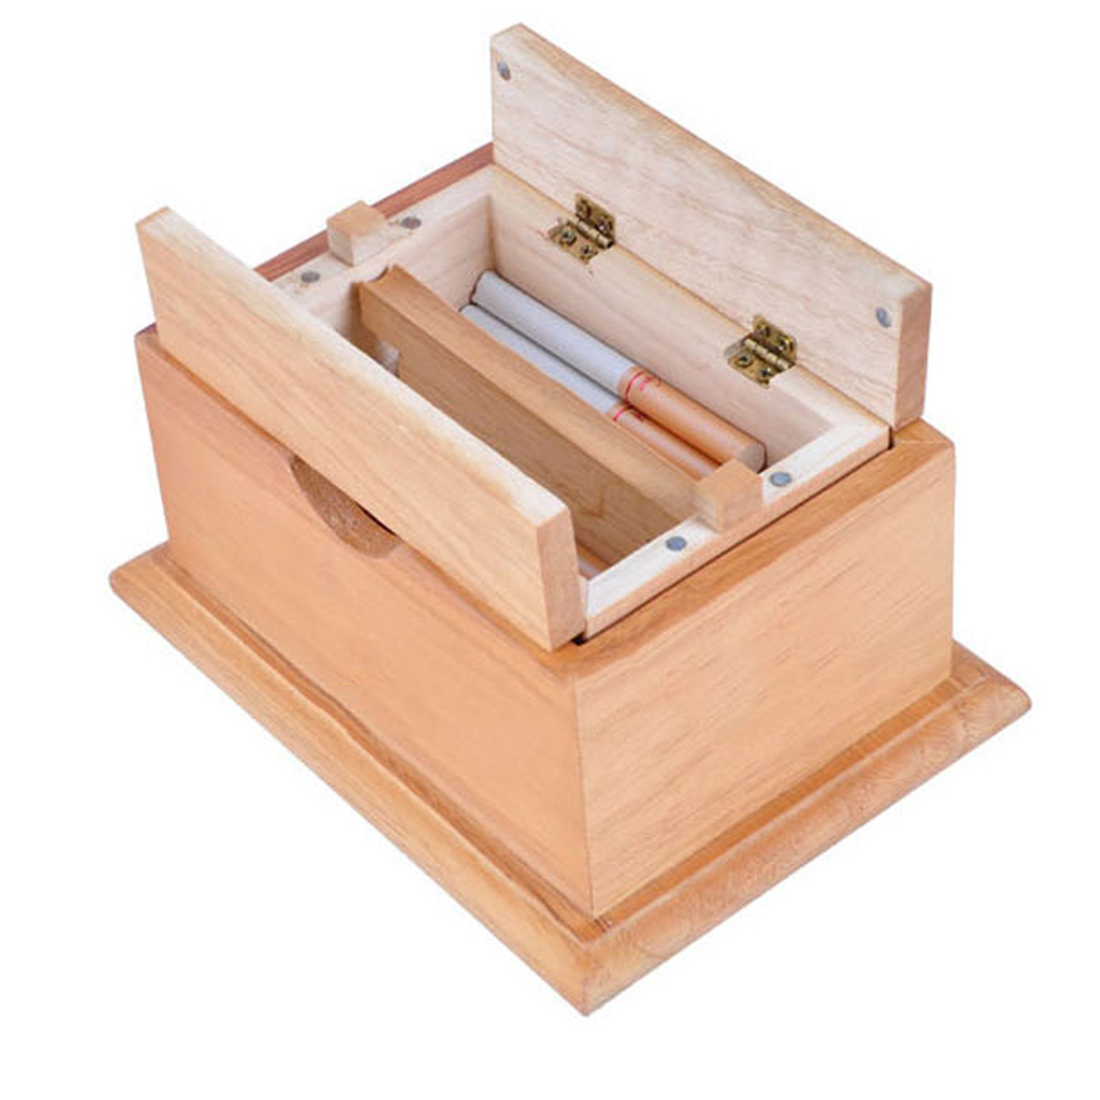 Wooden Puzzle Box With Secret  Cigarette Case Magic Compartment Brain Teaser Wooden Toys Puzzles Boxes Kids Wood Toy Gifts